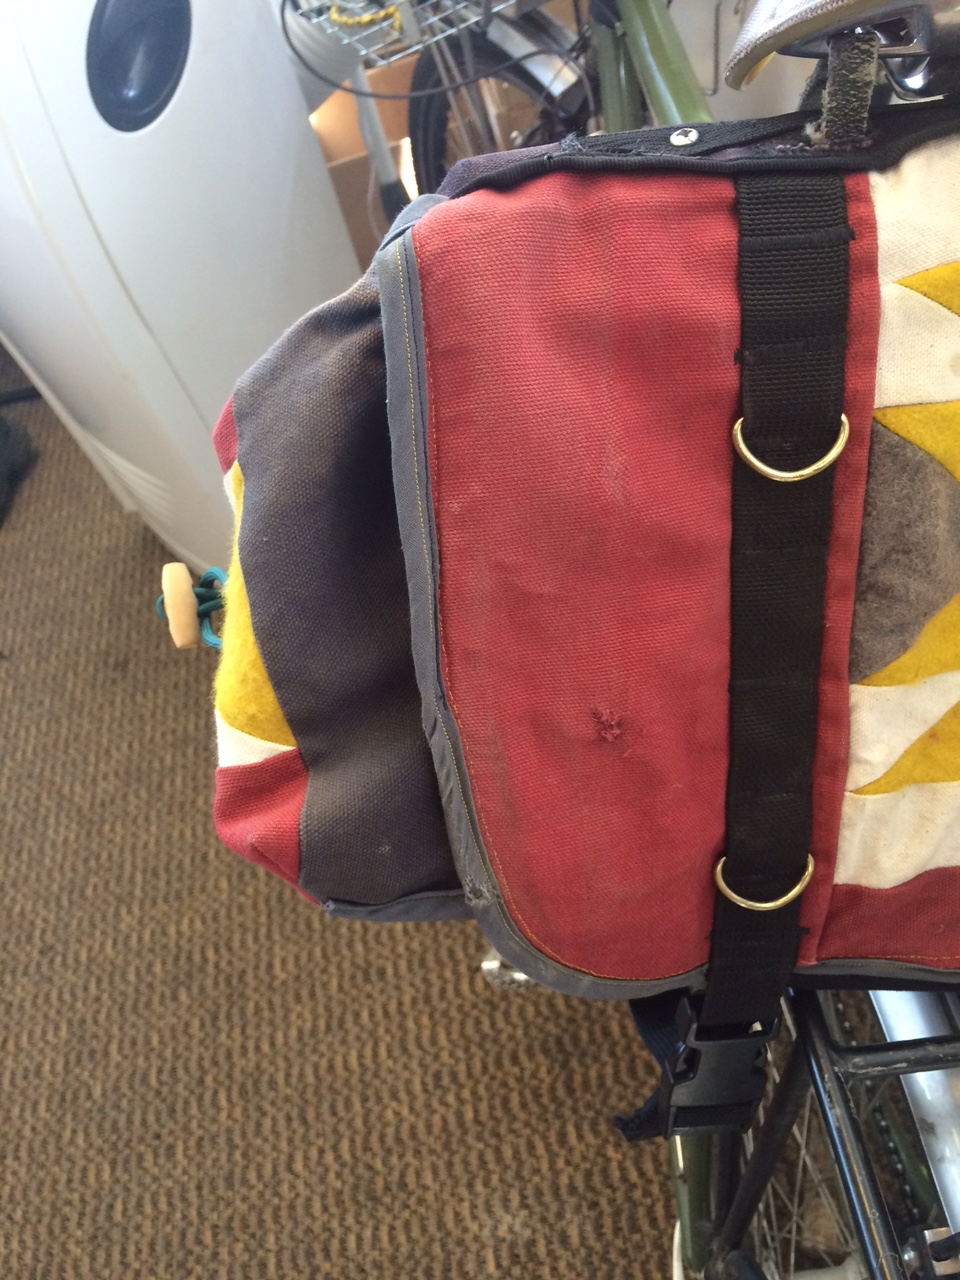 The little scuffs on my saddlebag where it hit the pavement--just enough to add some character.